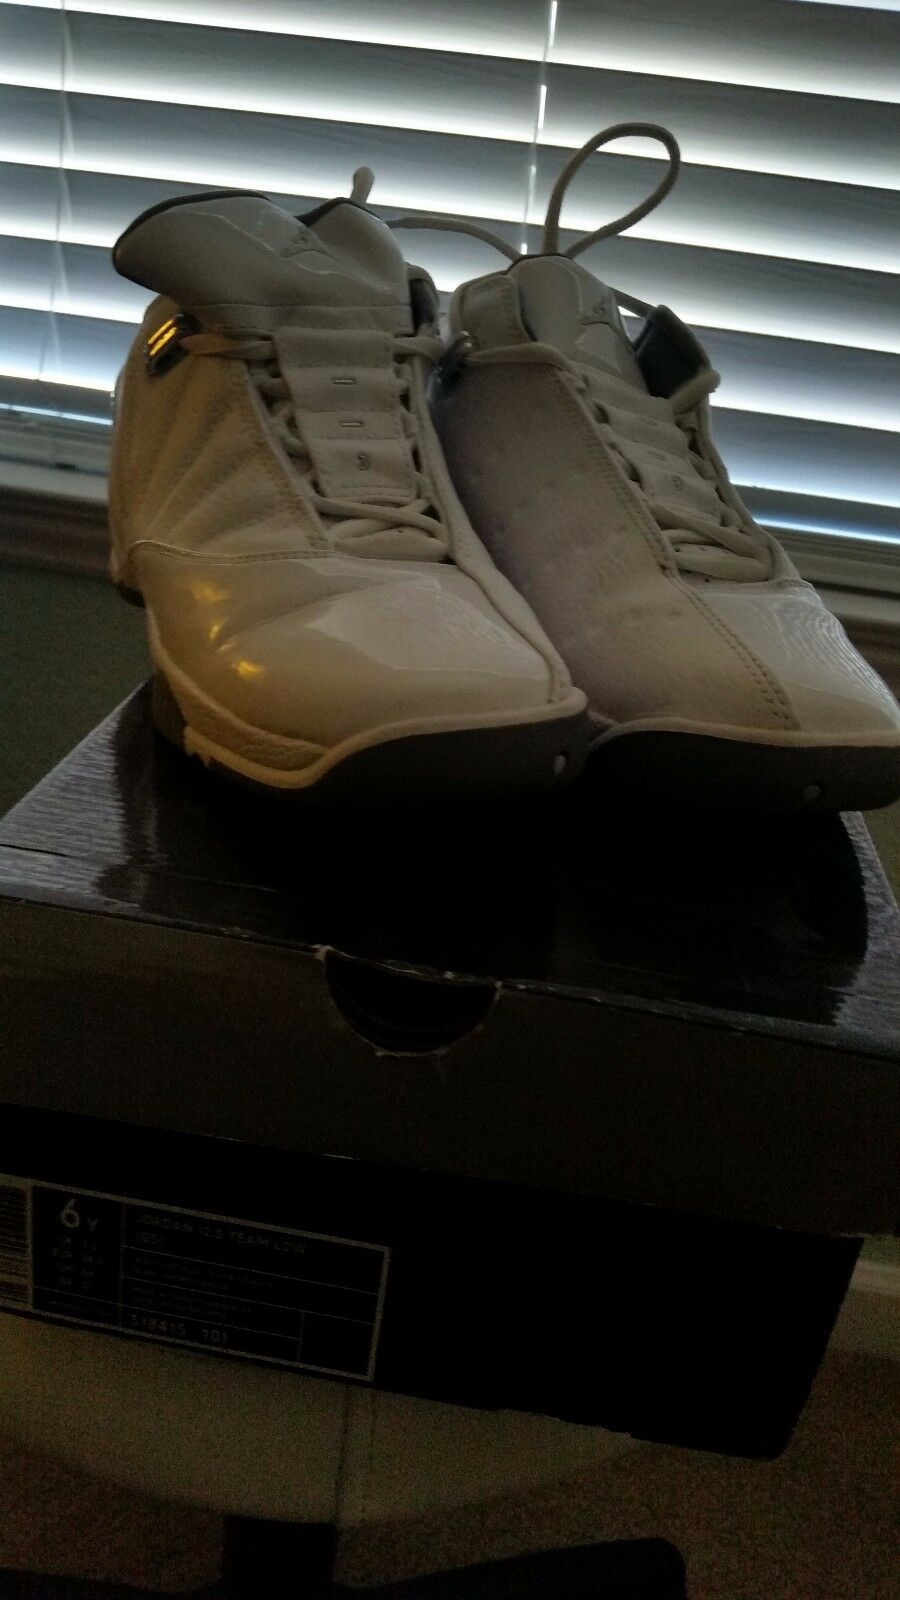 Jordan 12.5 Team Stealth Low (GS) White/Metallic Silver Stealth Team Size 6Y 8ff458